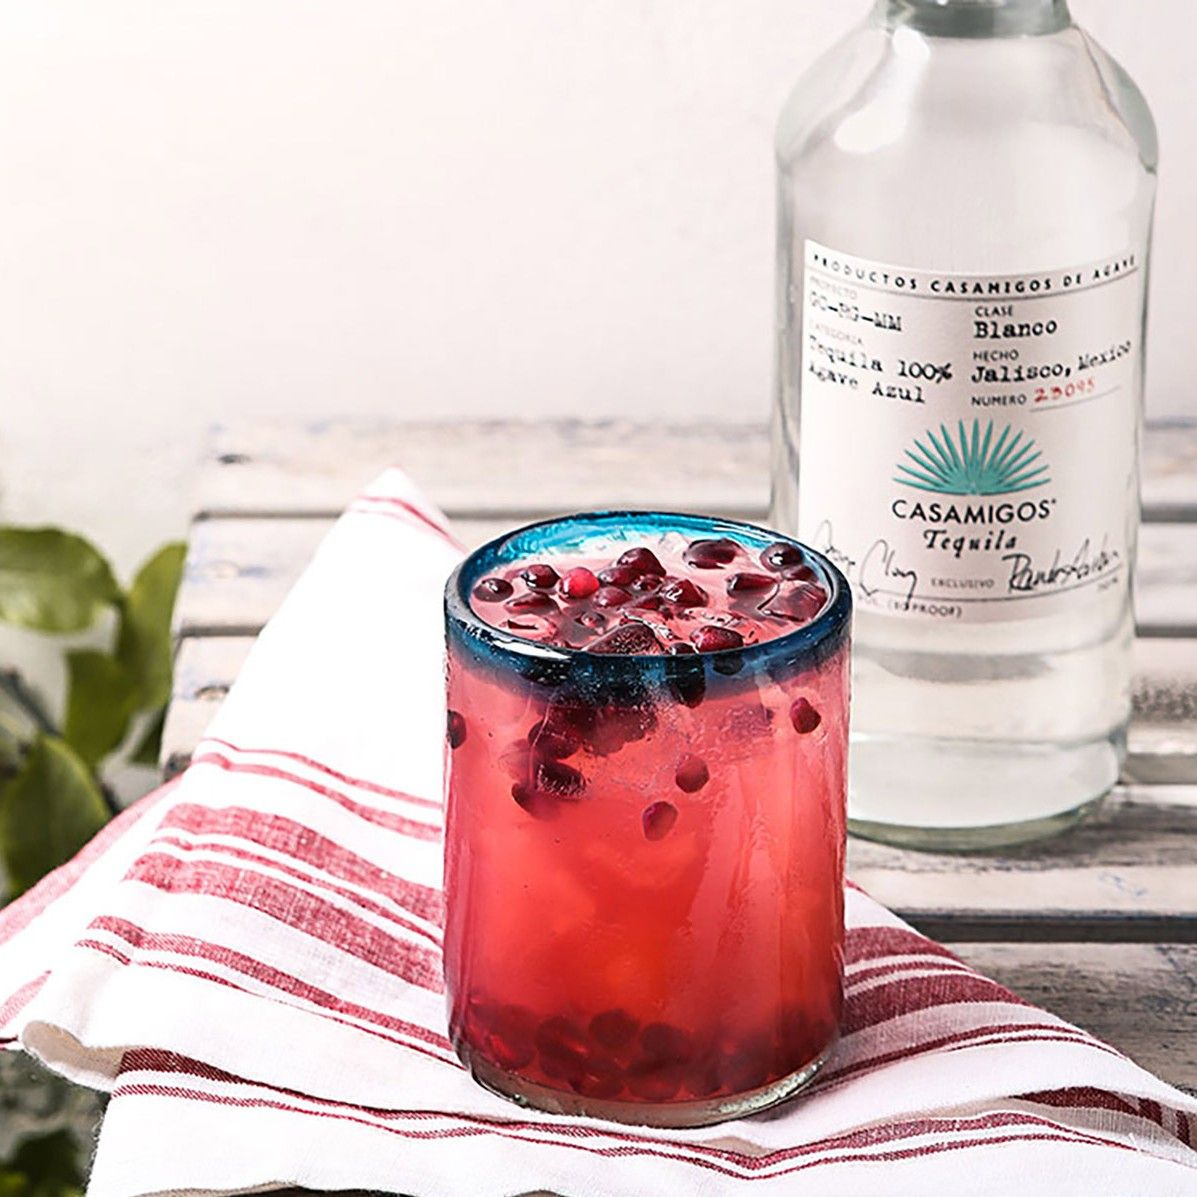 CASA SALUD 1.5 oz. Casamigos Blanco Tequila .5 oz. Fresh Lime Juice .5 oz. Cane Sugar 2 Thin Slices Serrano Chili 2 Bar Spoons Pomegranate Seeds Muddle pomegranate seeds in the bottom of shaker. Add all remaining ingredients. Shake vigorously for 8-10 seconds. Fine strain into rocks glass. Add ice. Garnish with 5-6 pomegranate seeds.